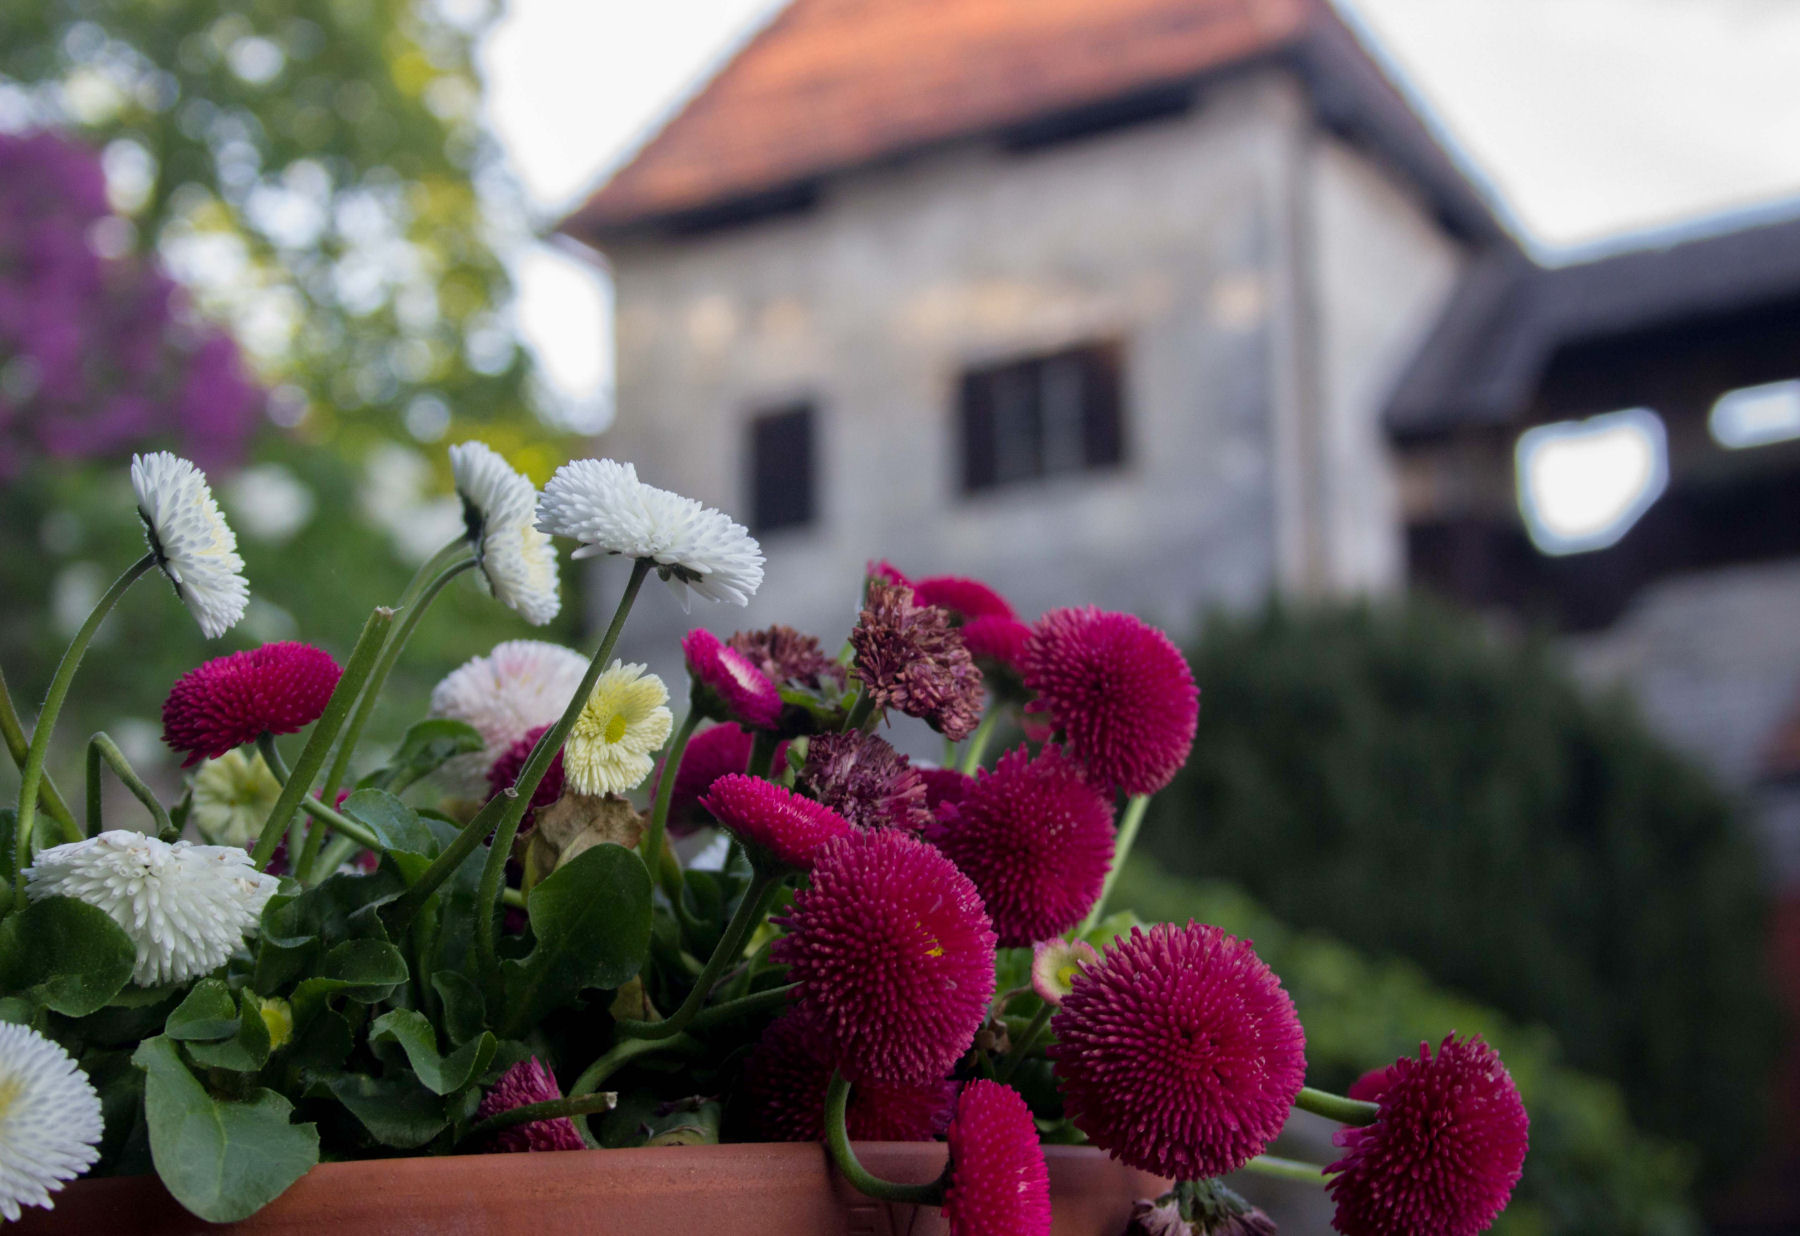 Some flowers at Bled Castle